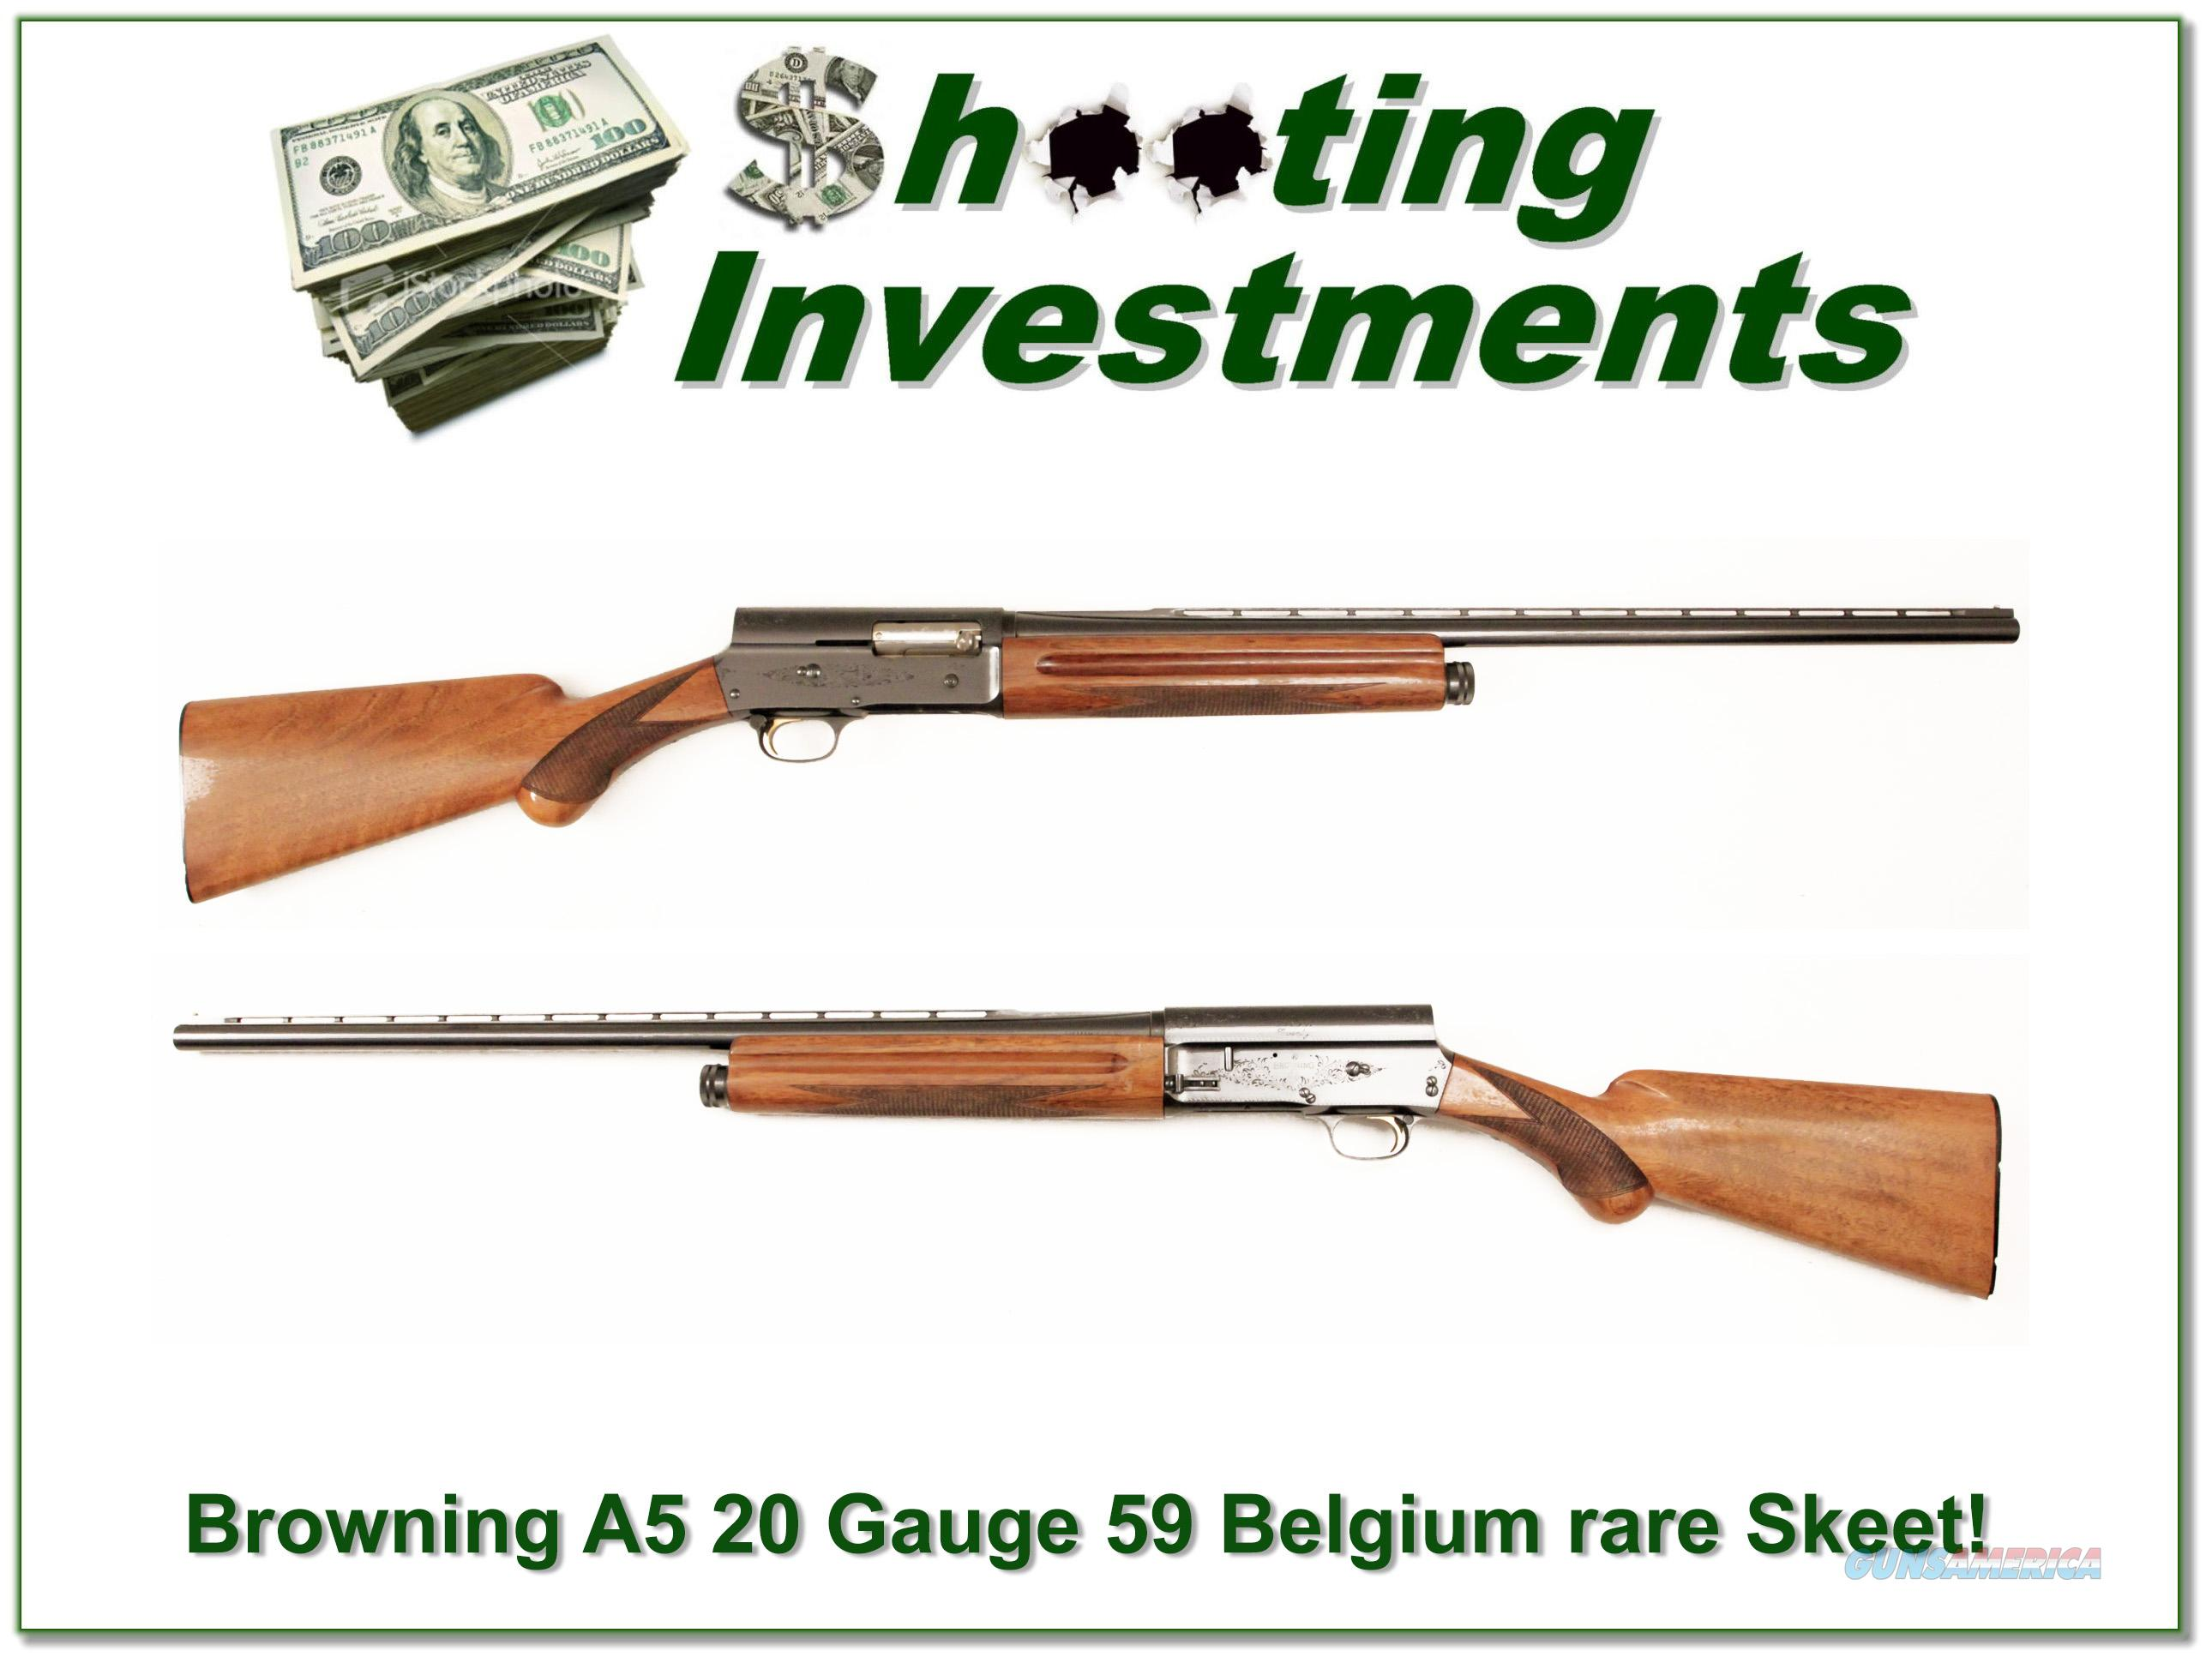 Browning A5 20 Gauge 1959 Belgium 26in VR Skeet!  Guns > Shotguns > Browning Shotguns > Autoloaders > Hunting